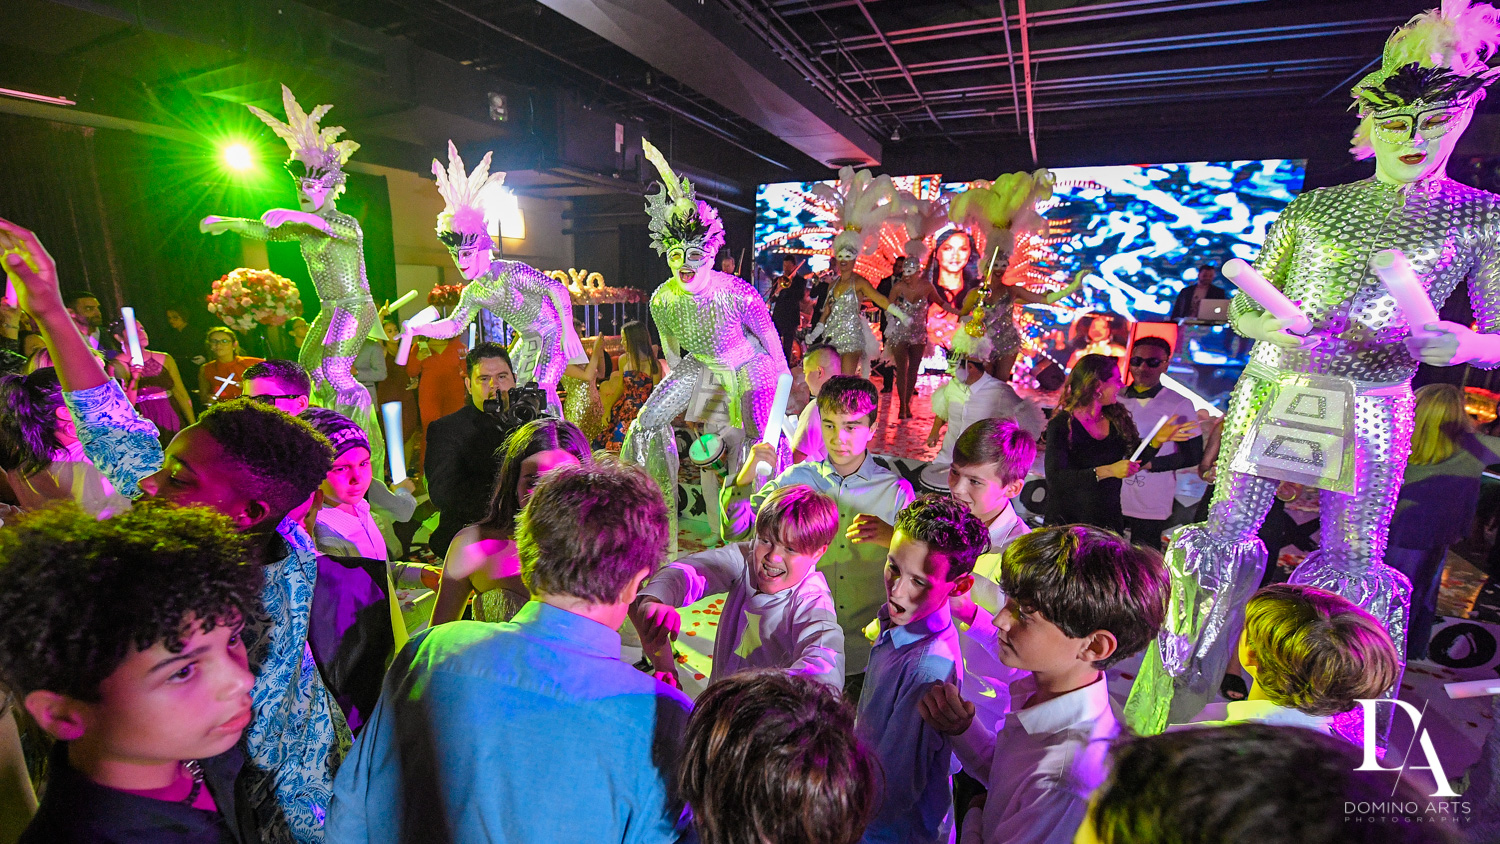 best fun party ideas at Fashion Theme Bat Mitzvah at Gallery of Amazing Things by Domino Arts Photography